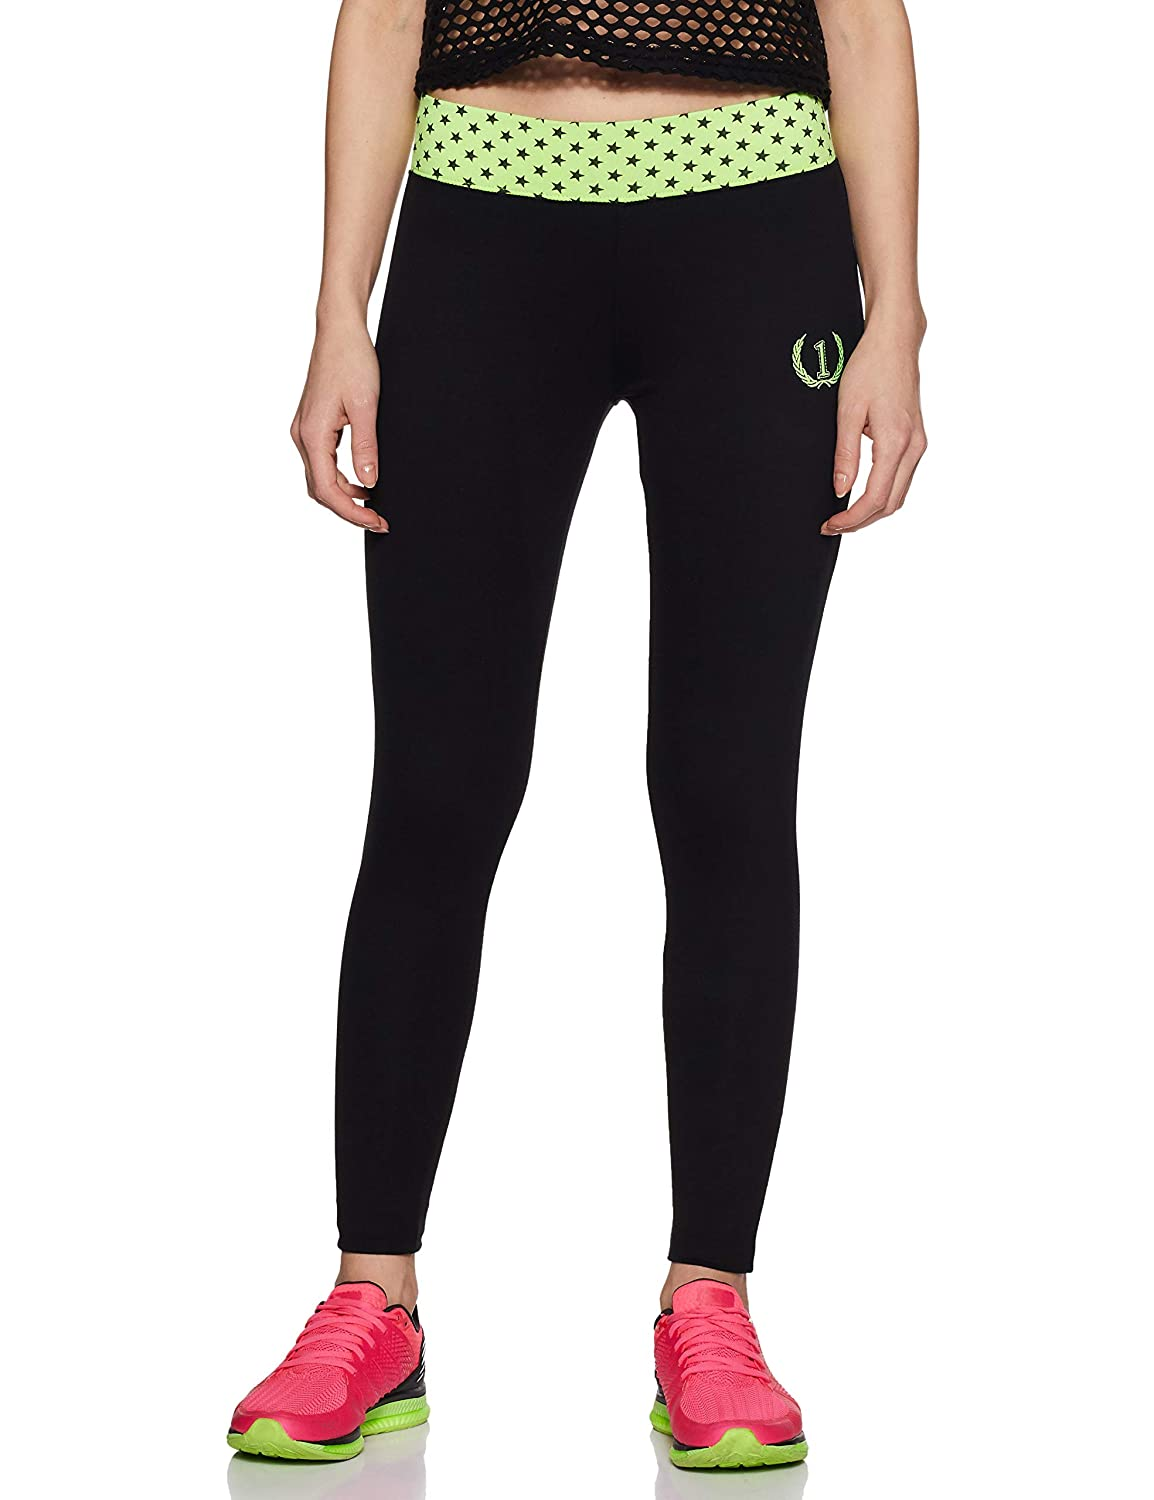 e4a5c00ba90 ONESPORT Women s Cotton Black + NEON Green Tights(ONSP6BG-P)  Amazon.in   Clothing   Accessories